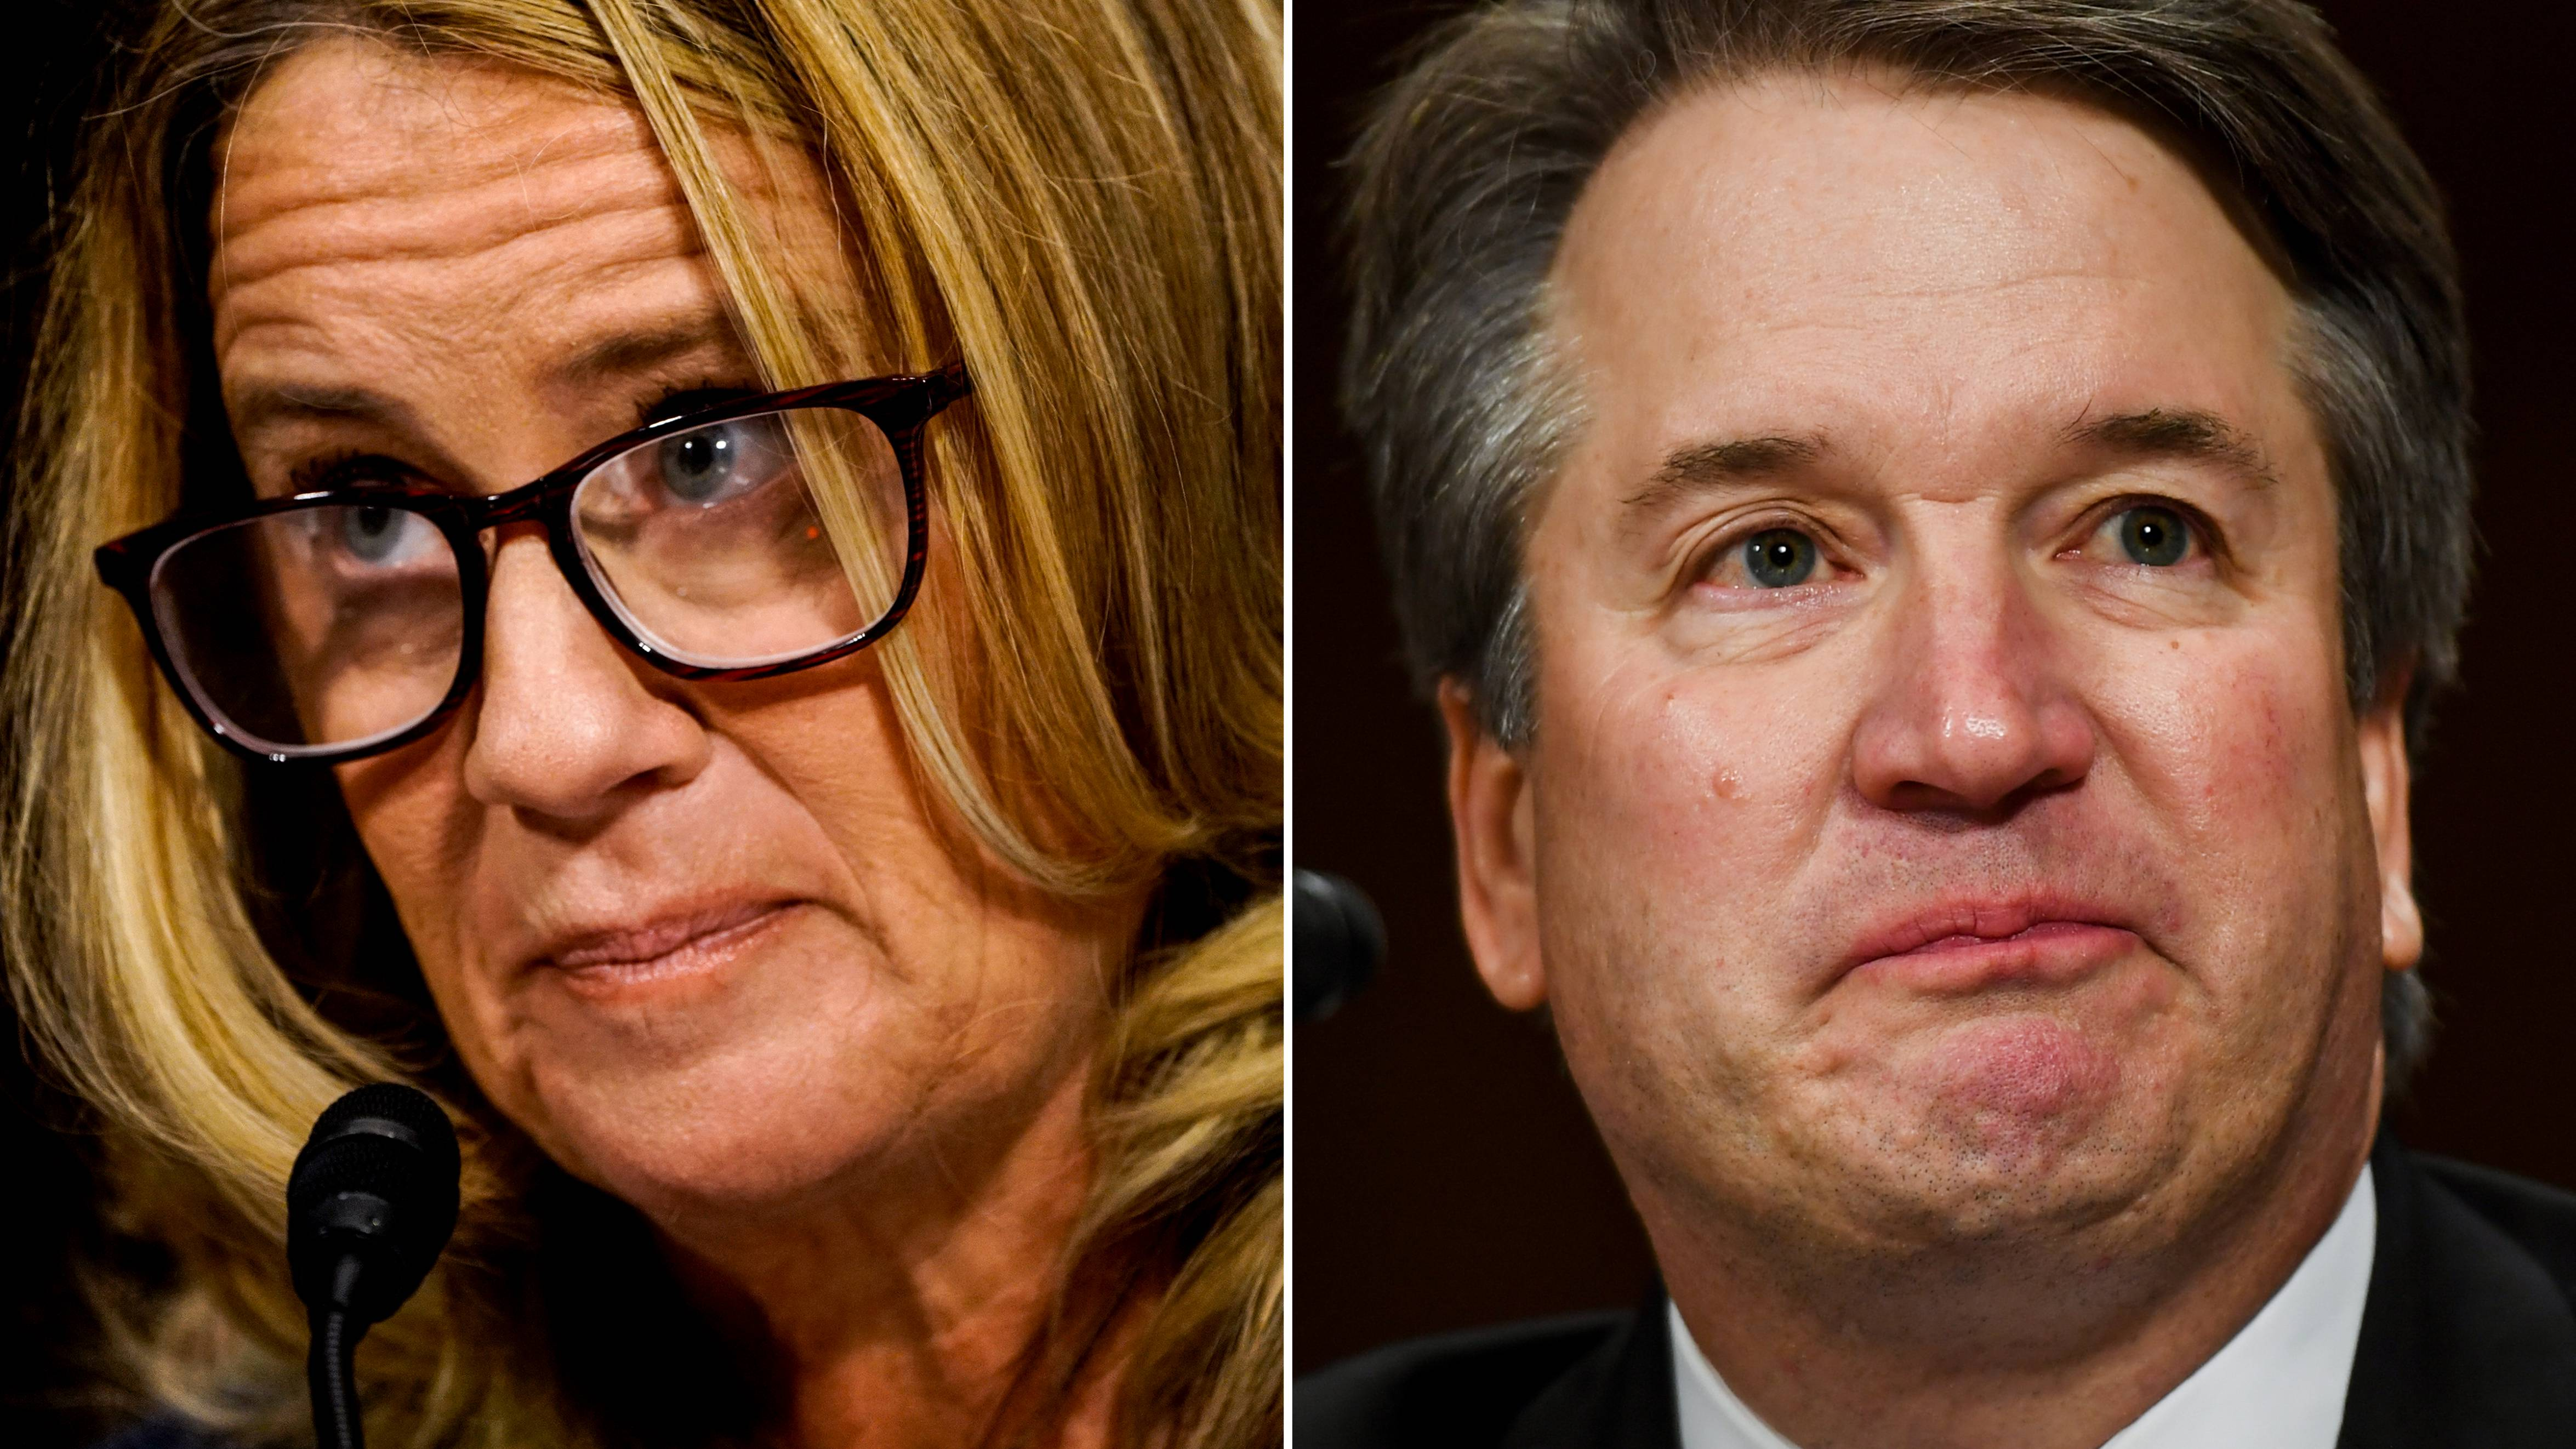 Left - Christine Blasey Ford at a Senate Judiciary Committee he